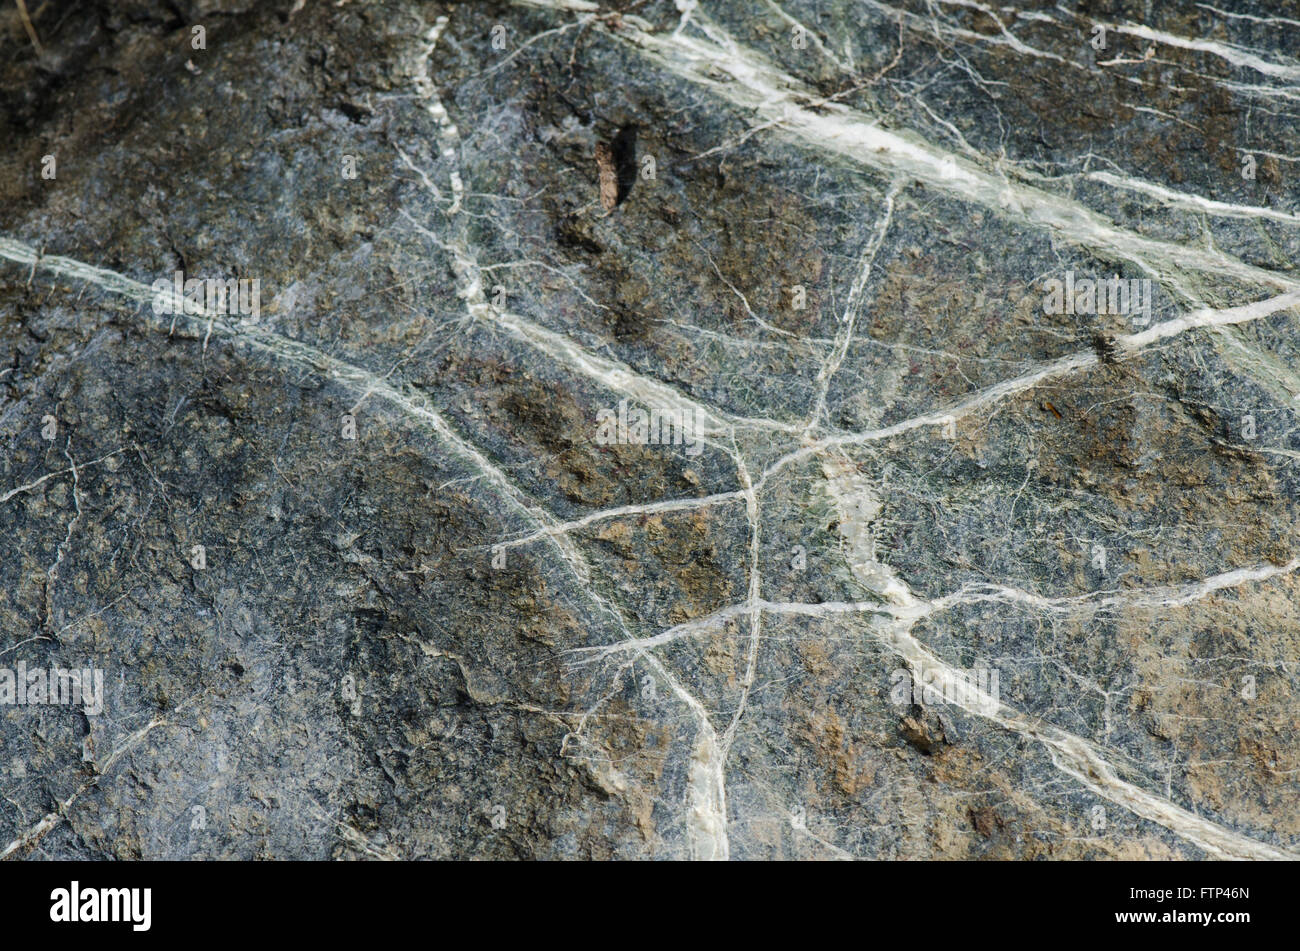 Rock surface veined with white layers. Spain - Stock Image